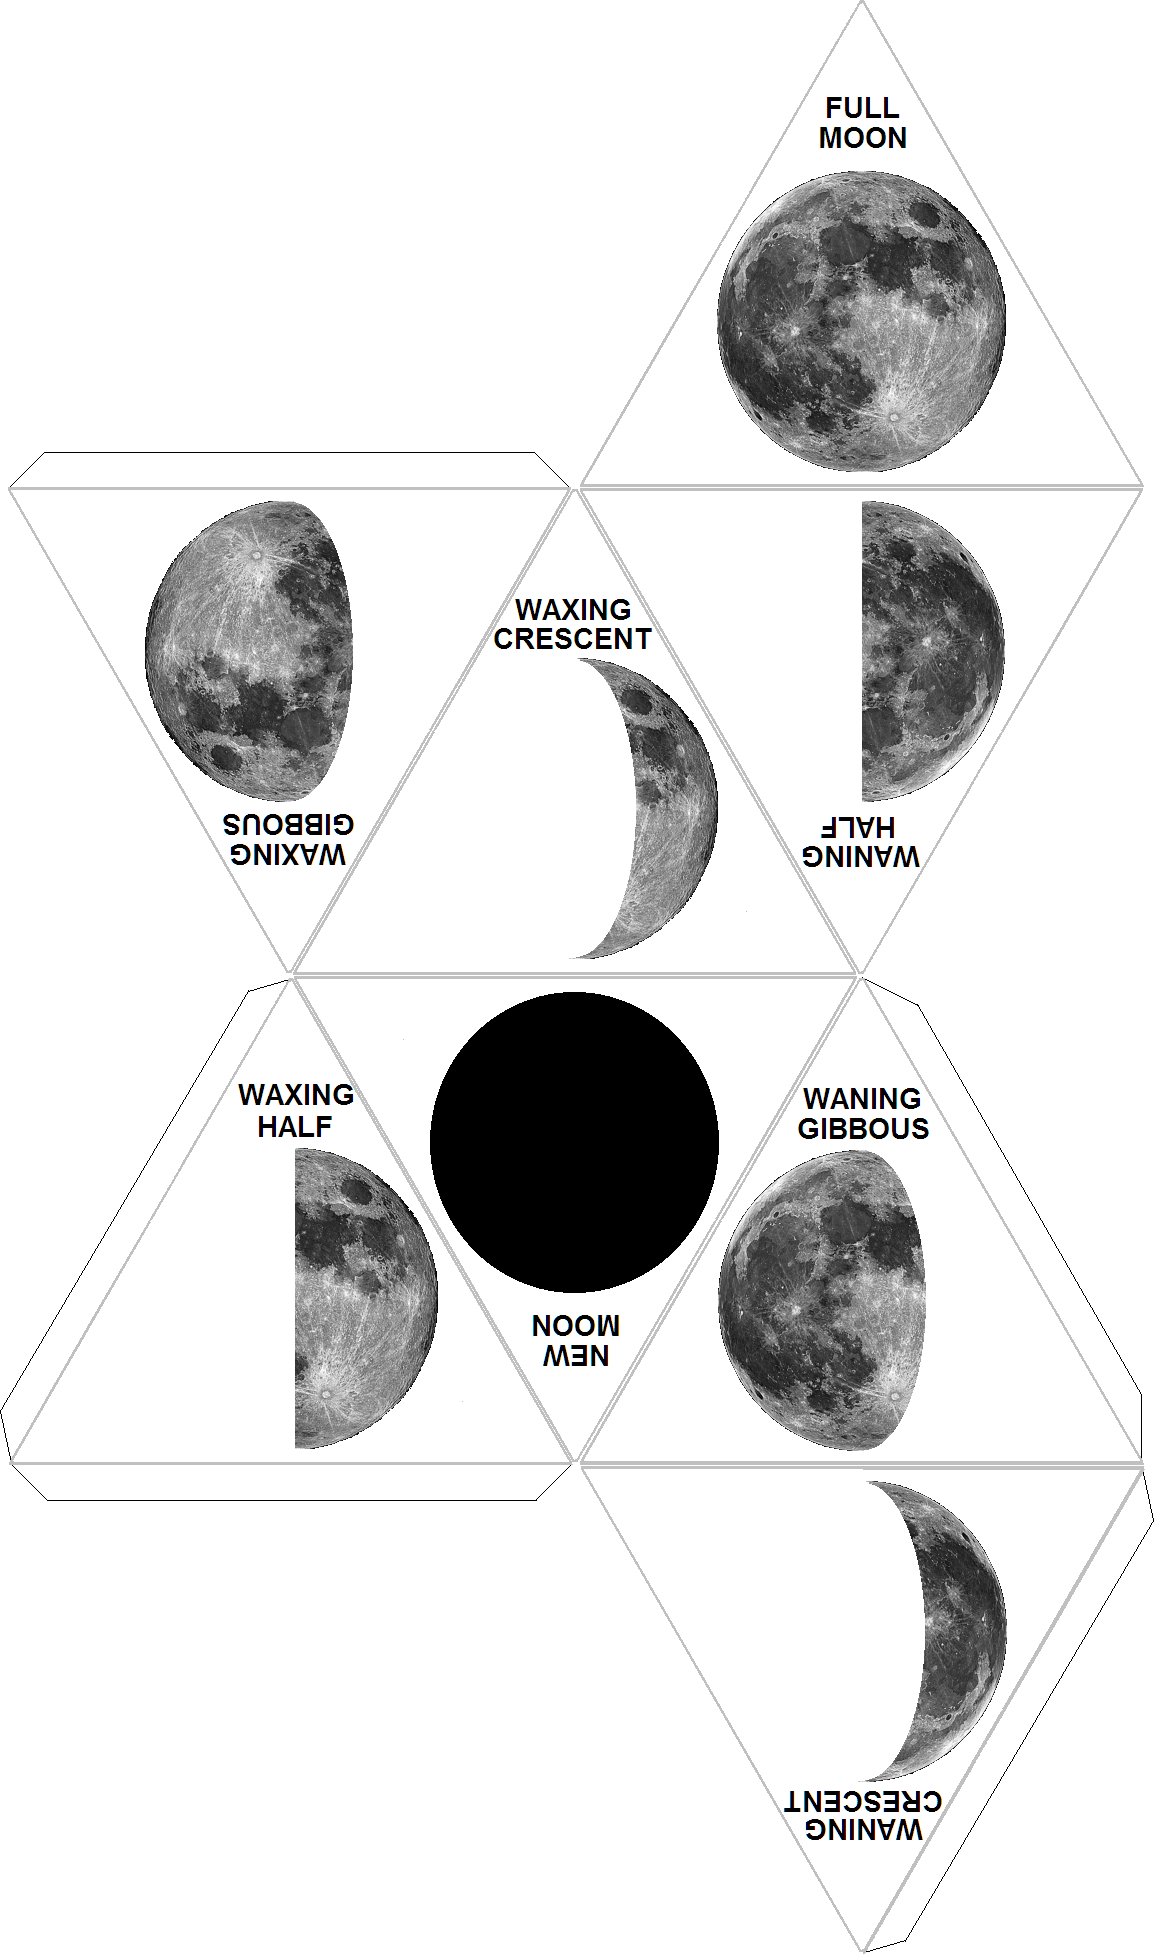 Create Moon Phases Foldable Leave Off The Names And Have The Students Identify The Phase After